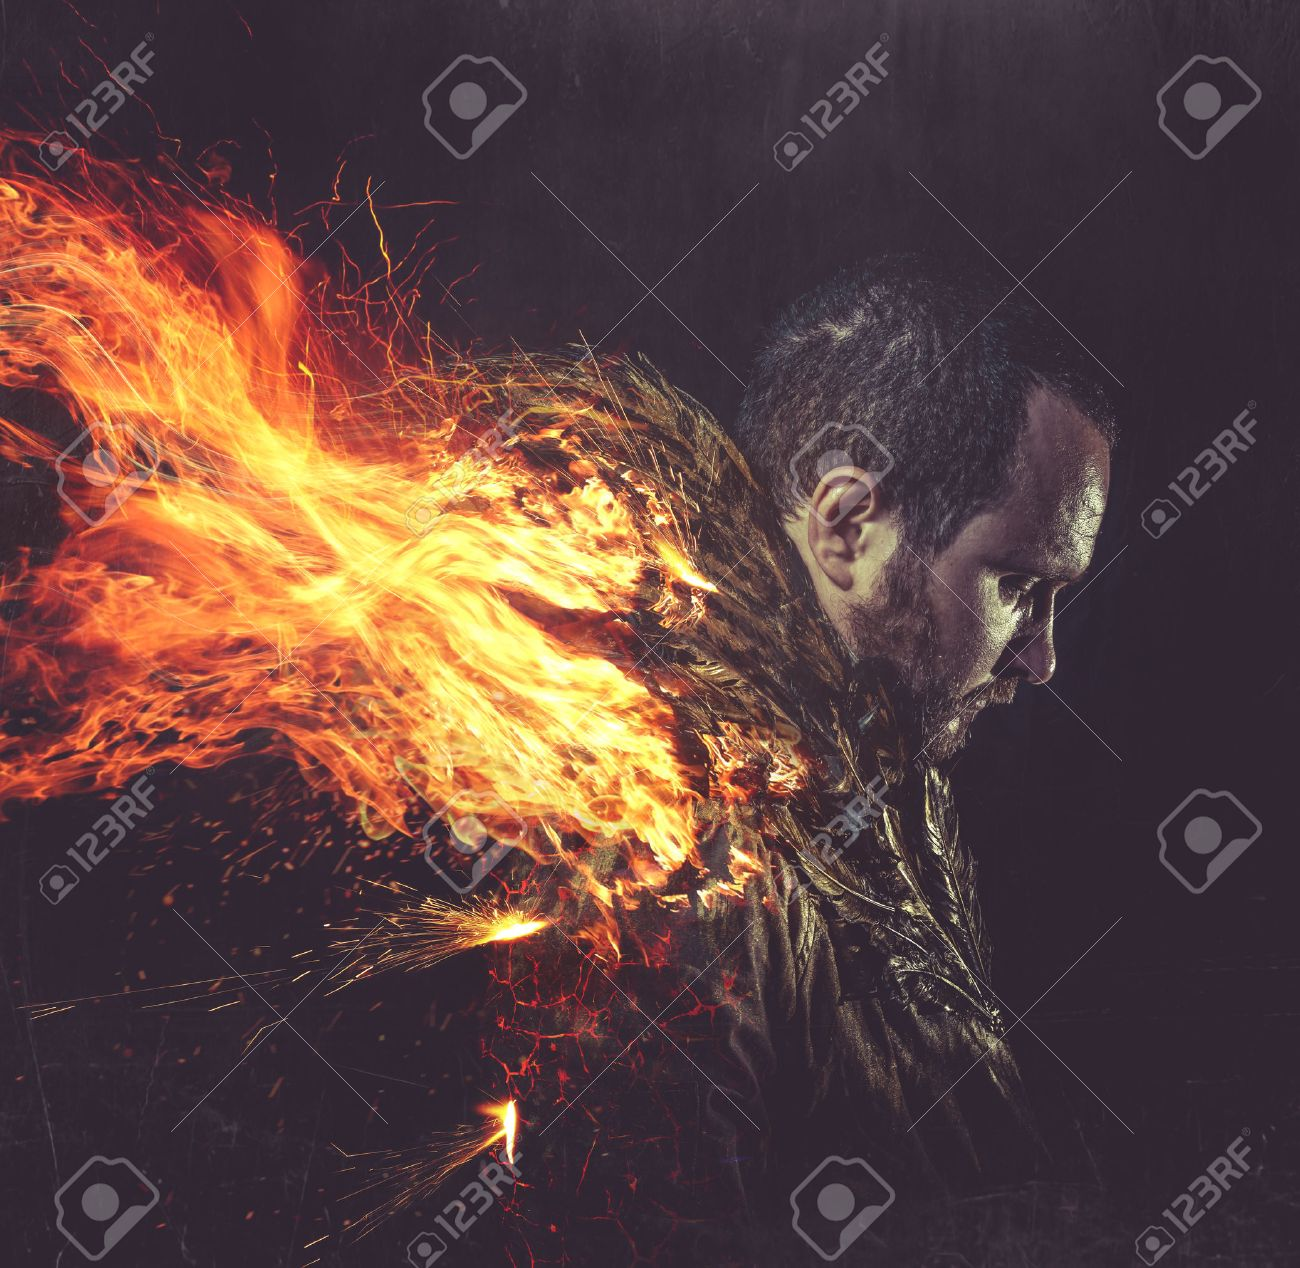 fallen angel, jacket man with golden feathers on the wings and fire Stock Photo - 30572999